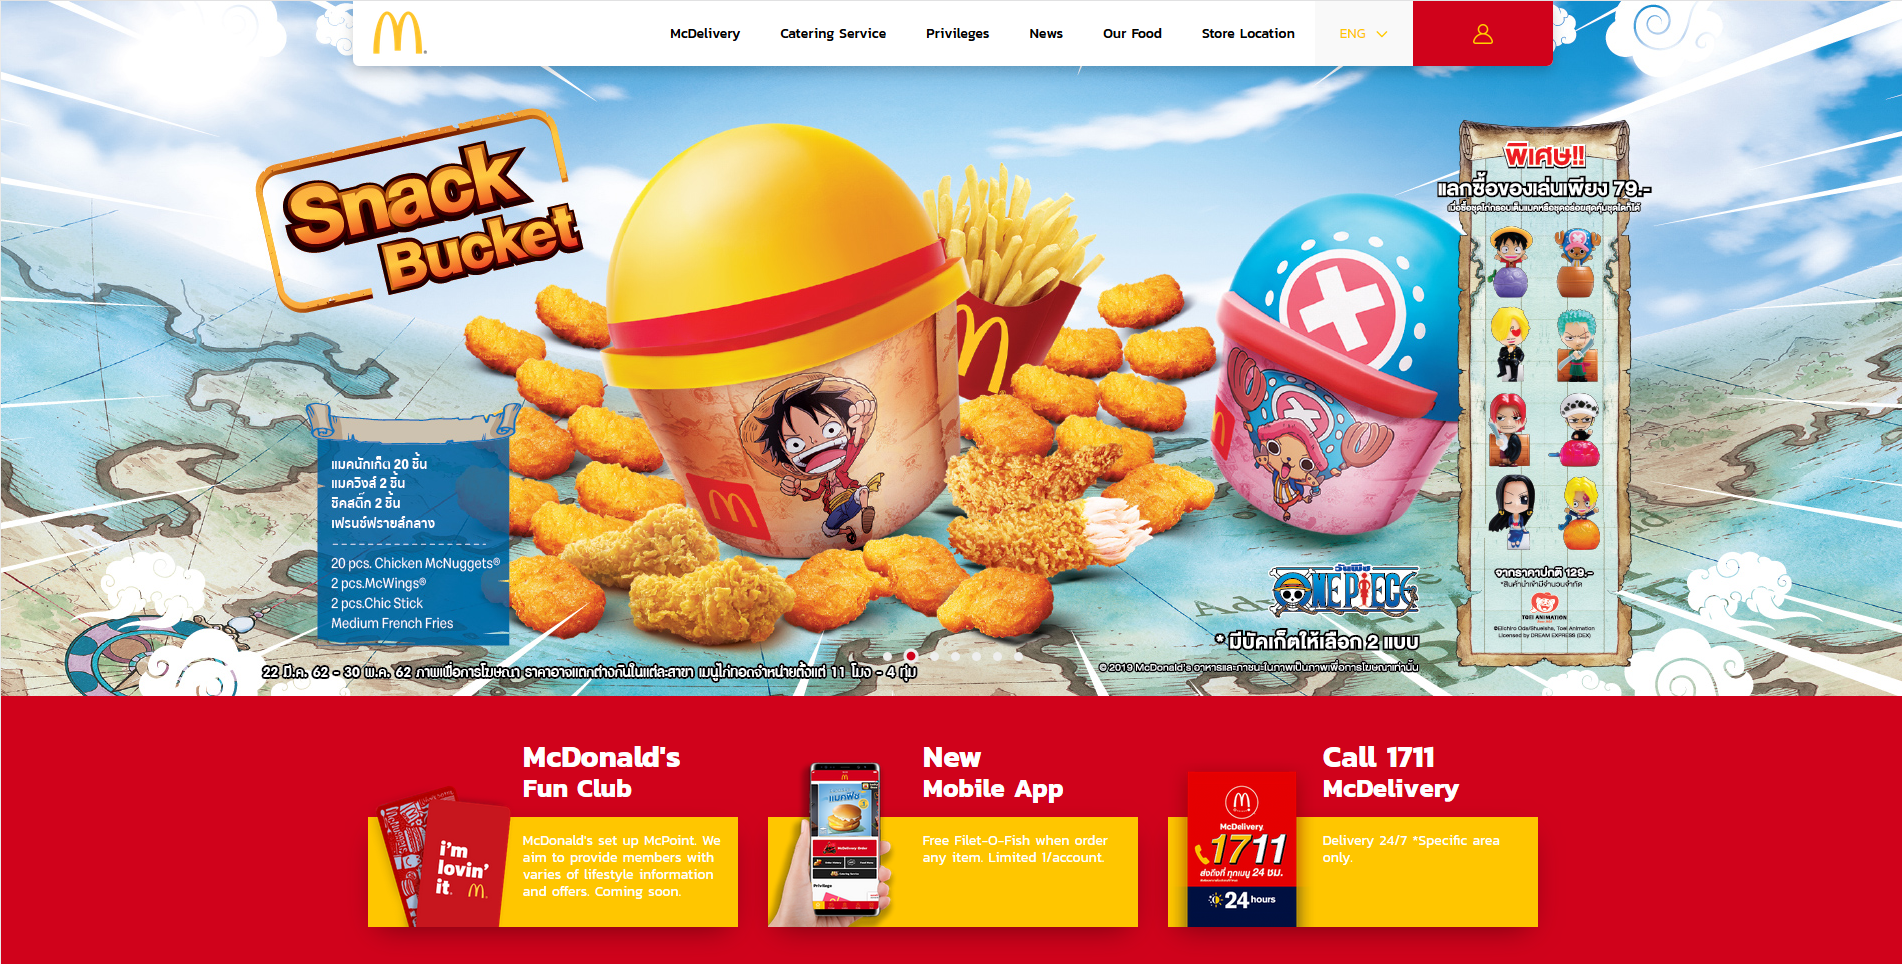 Image of McDonald's Thailand website as an example of Cross-cultural communication